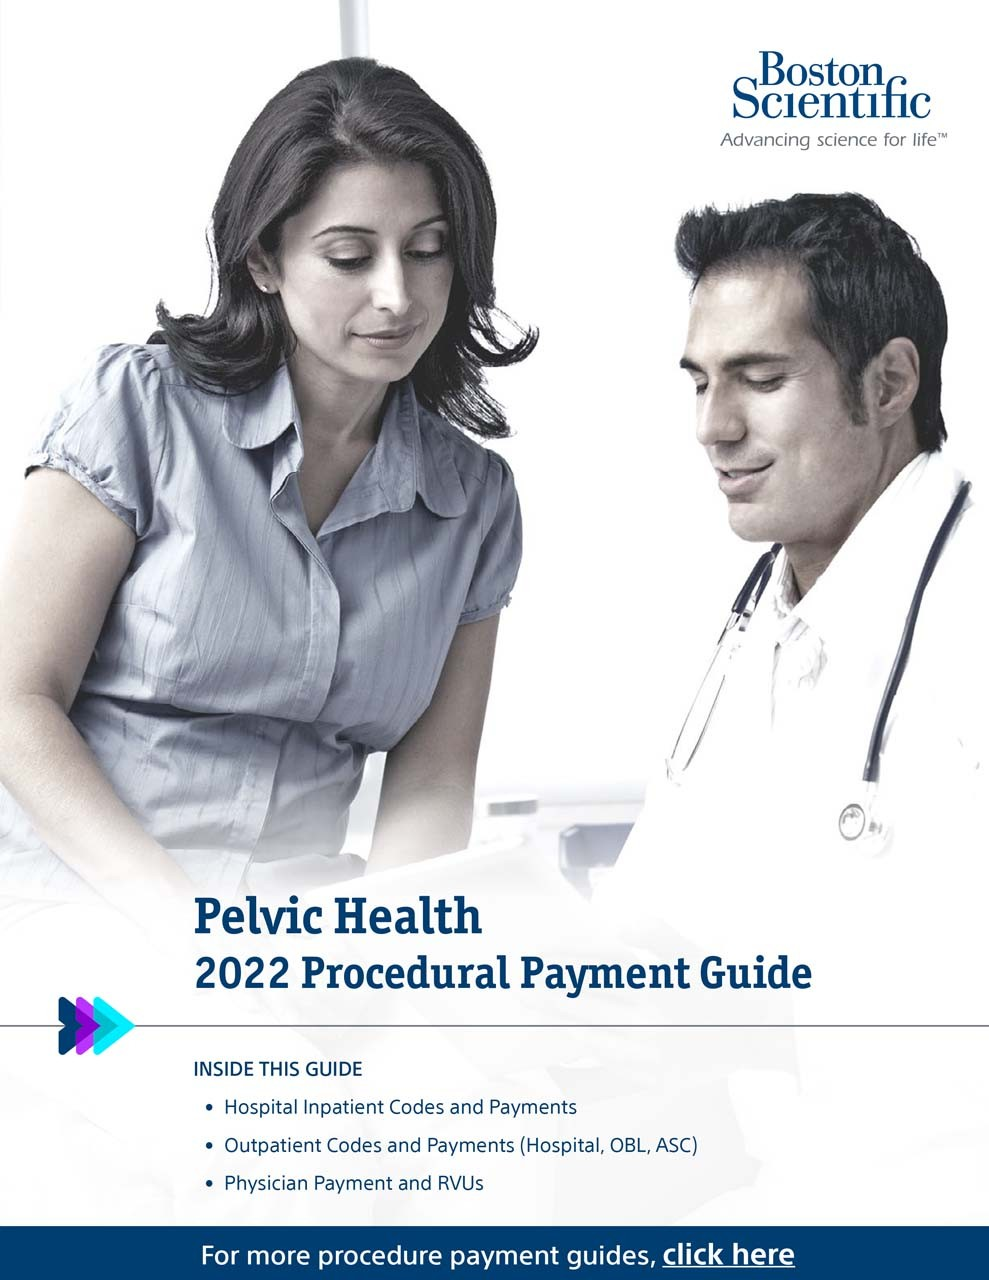 Pelvic Health Coding and Payment Guide